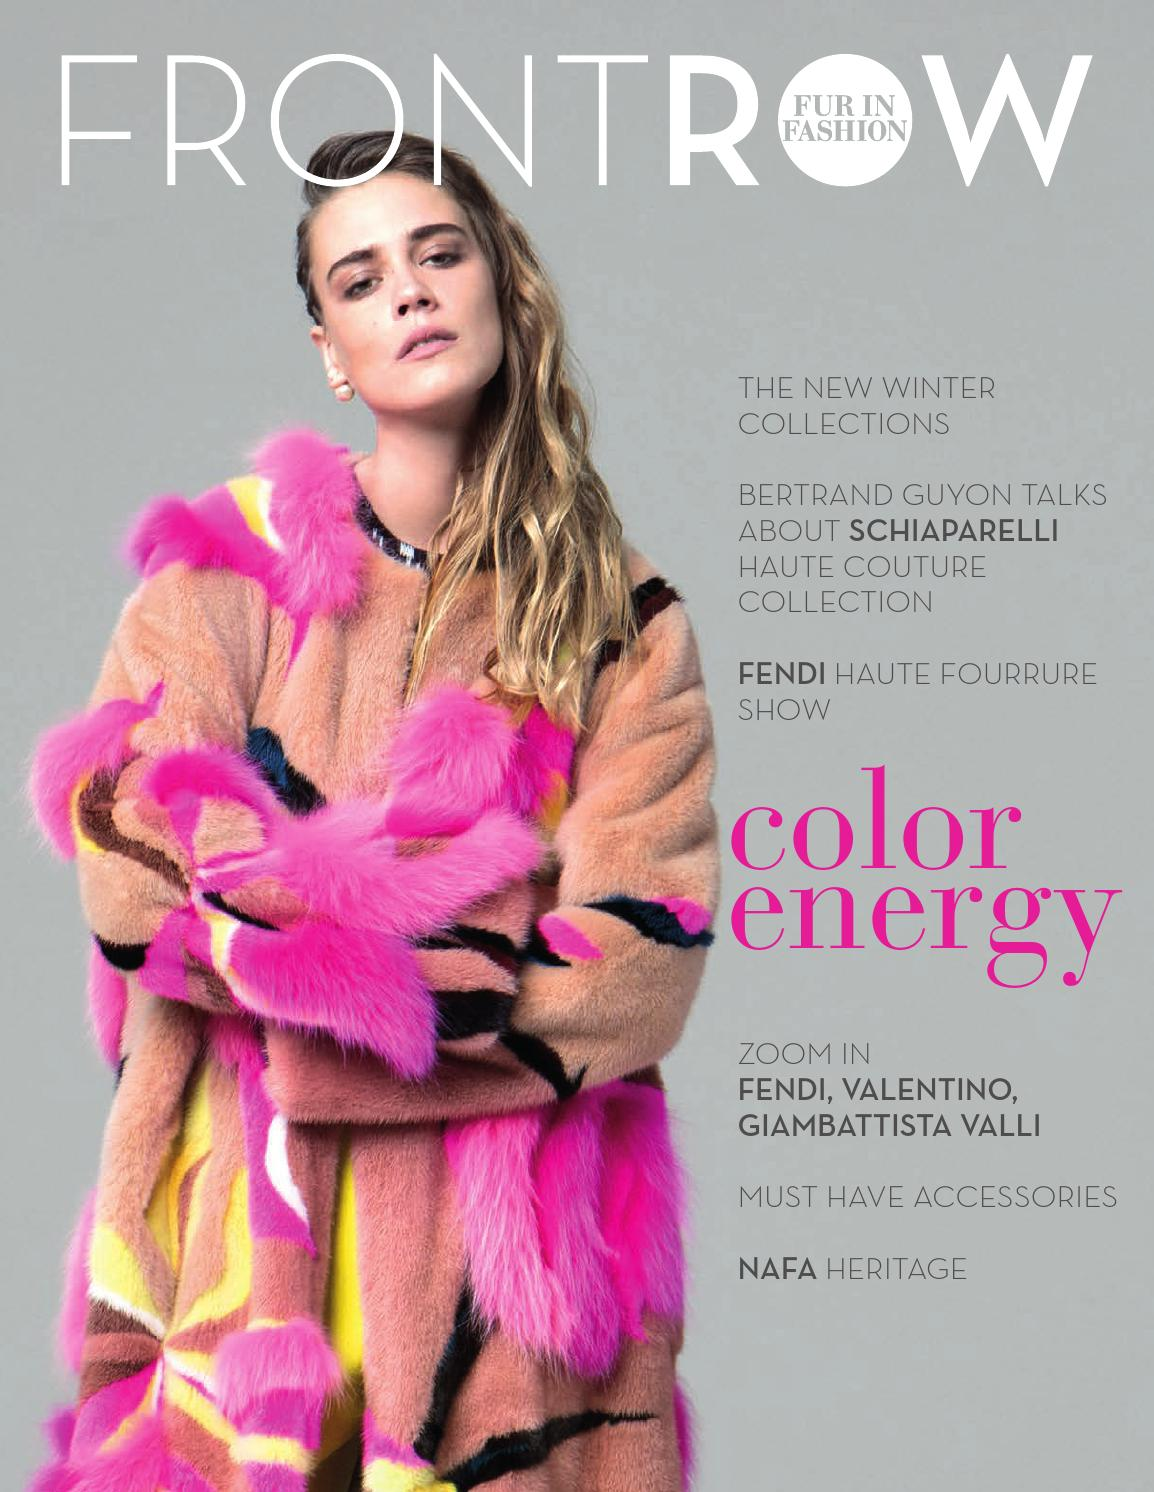 FRONTROW fur in fashion #1 by FRONTROW FUR IN FASHION issuu